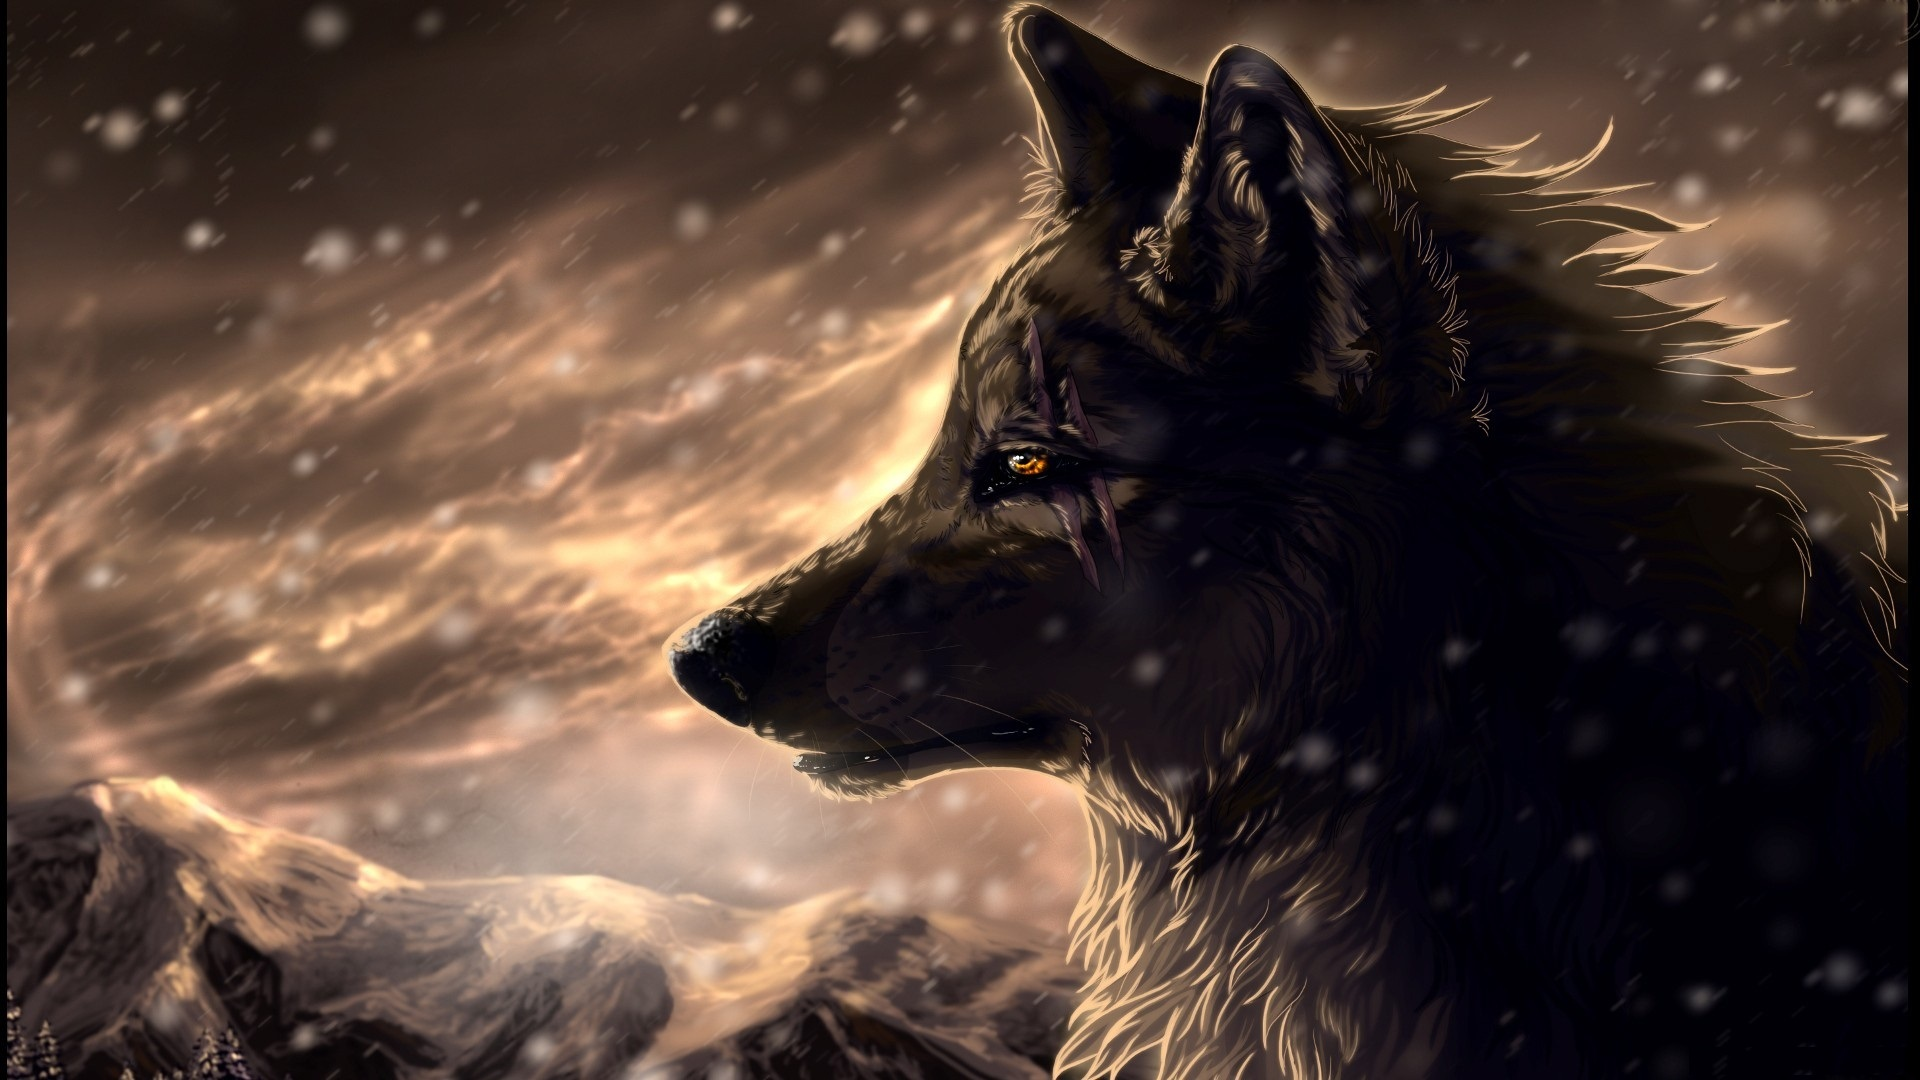 Drawn wallpaper wolf Drawn free wallpapers wallpaper download